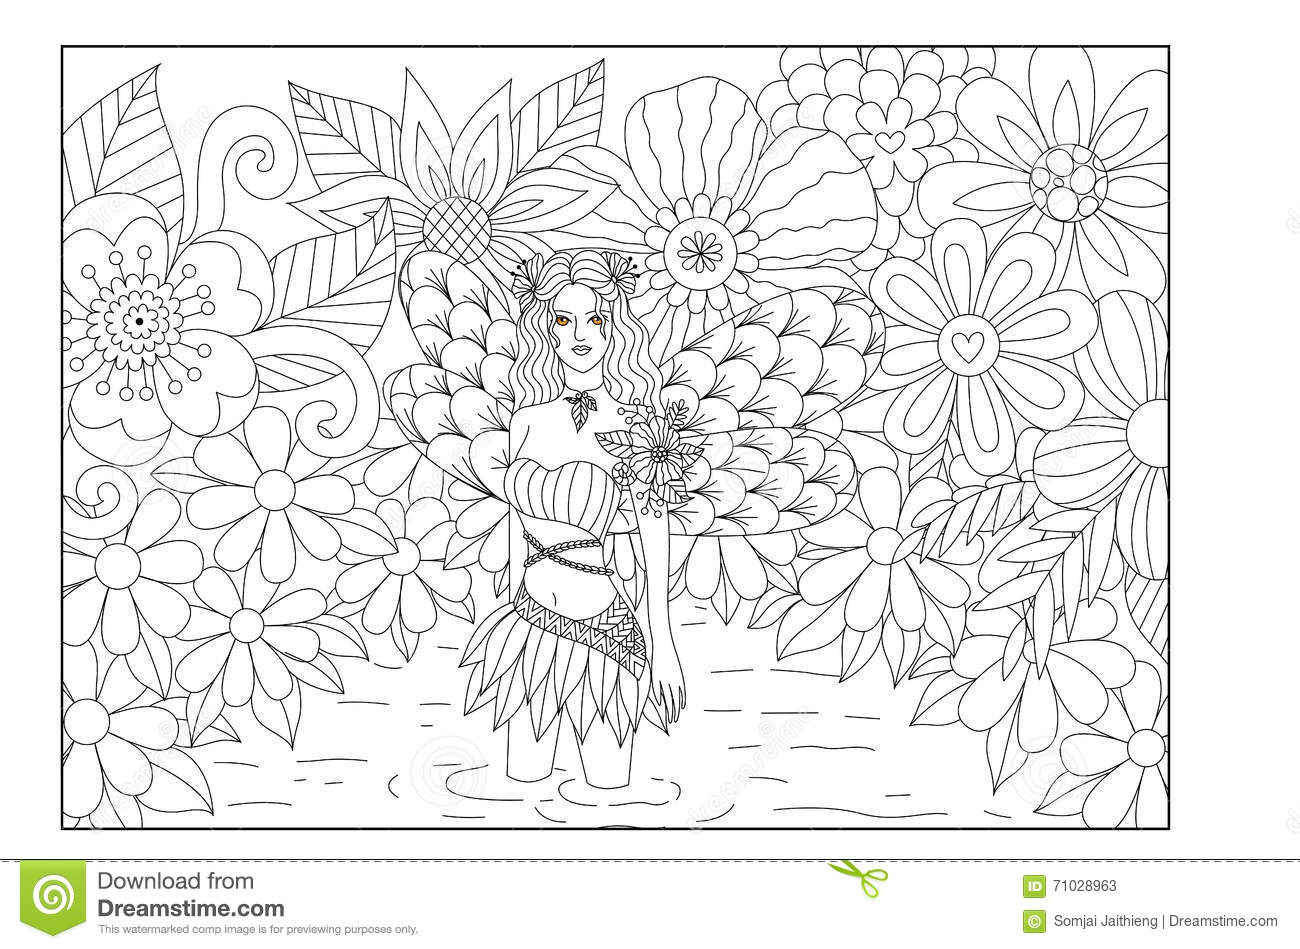 Fairy In Pond Line Art Design For Coloring Book For Adult